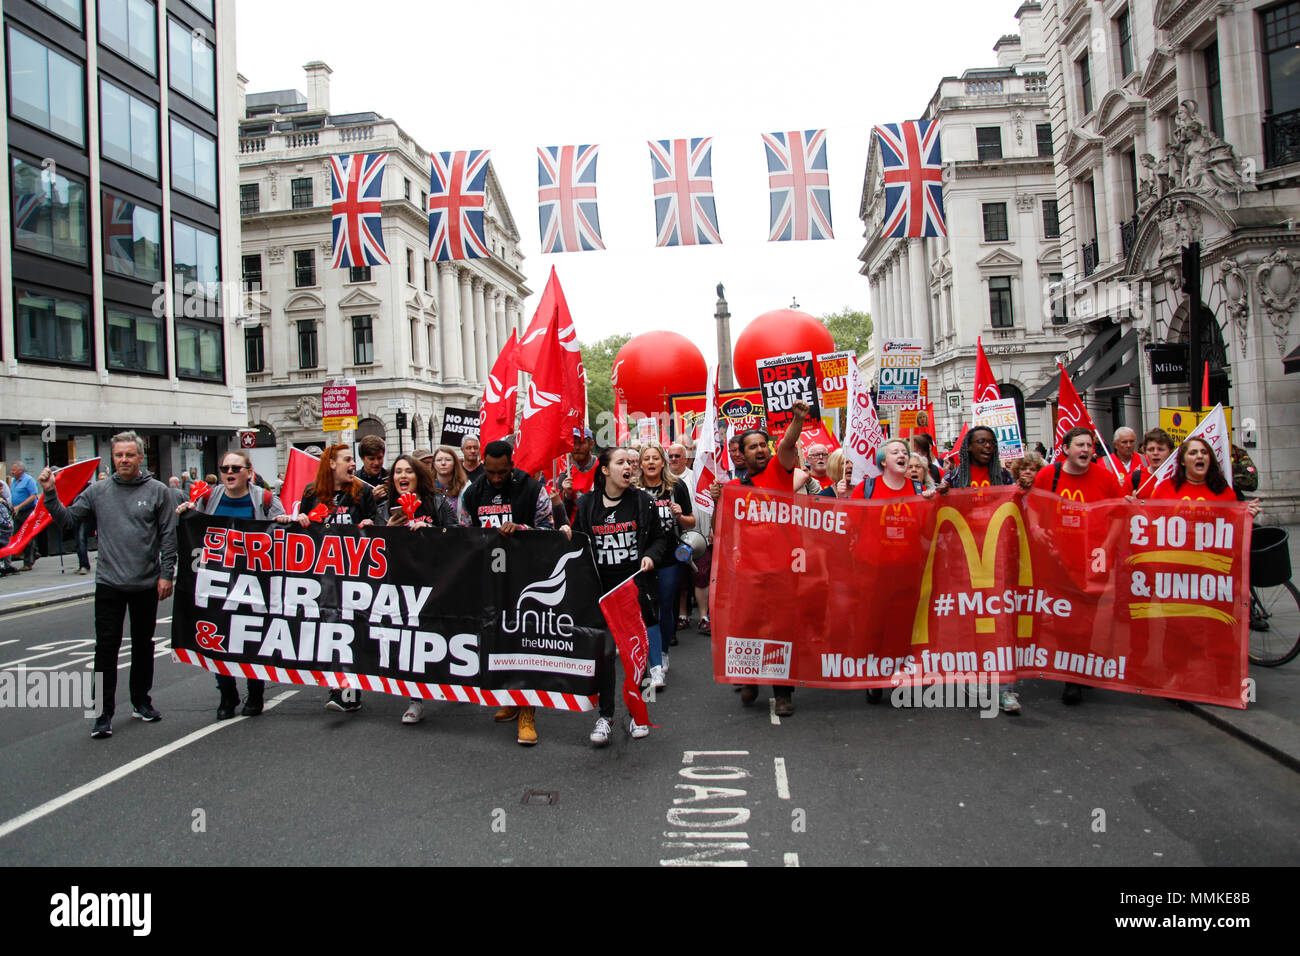 McDonalds and TGI Fridays workers at the TUC Rally - Stock Image